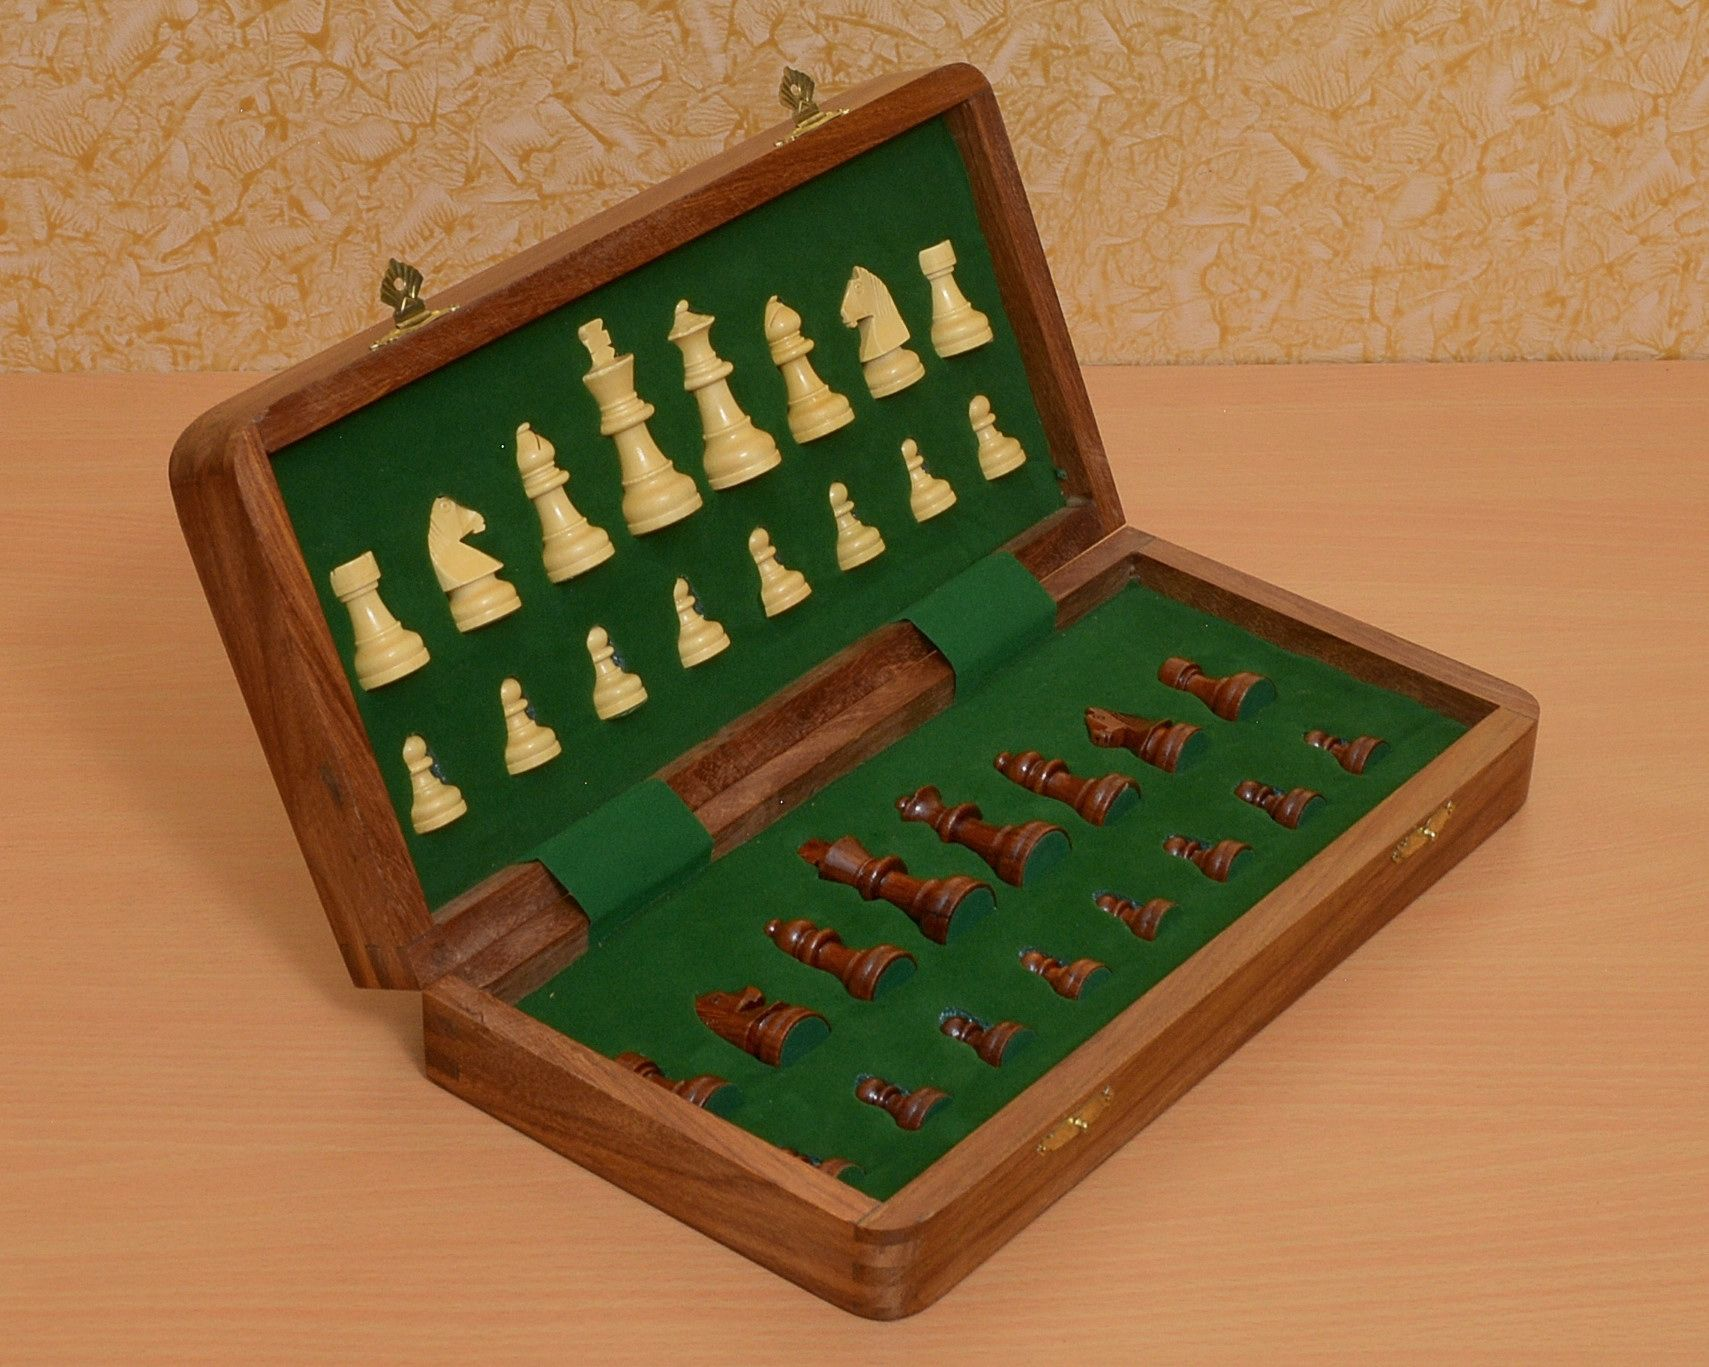 Storage Boxes  Chessbazaar Offers Highquality Range Of Exclusive Hand  Crafted Wooden And Leather Chess Storage Boxes For Chessmen